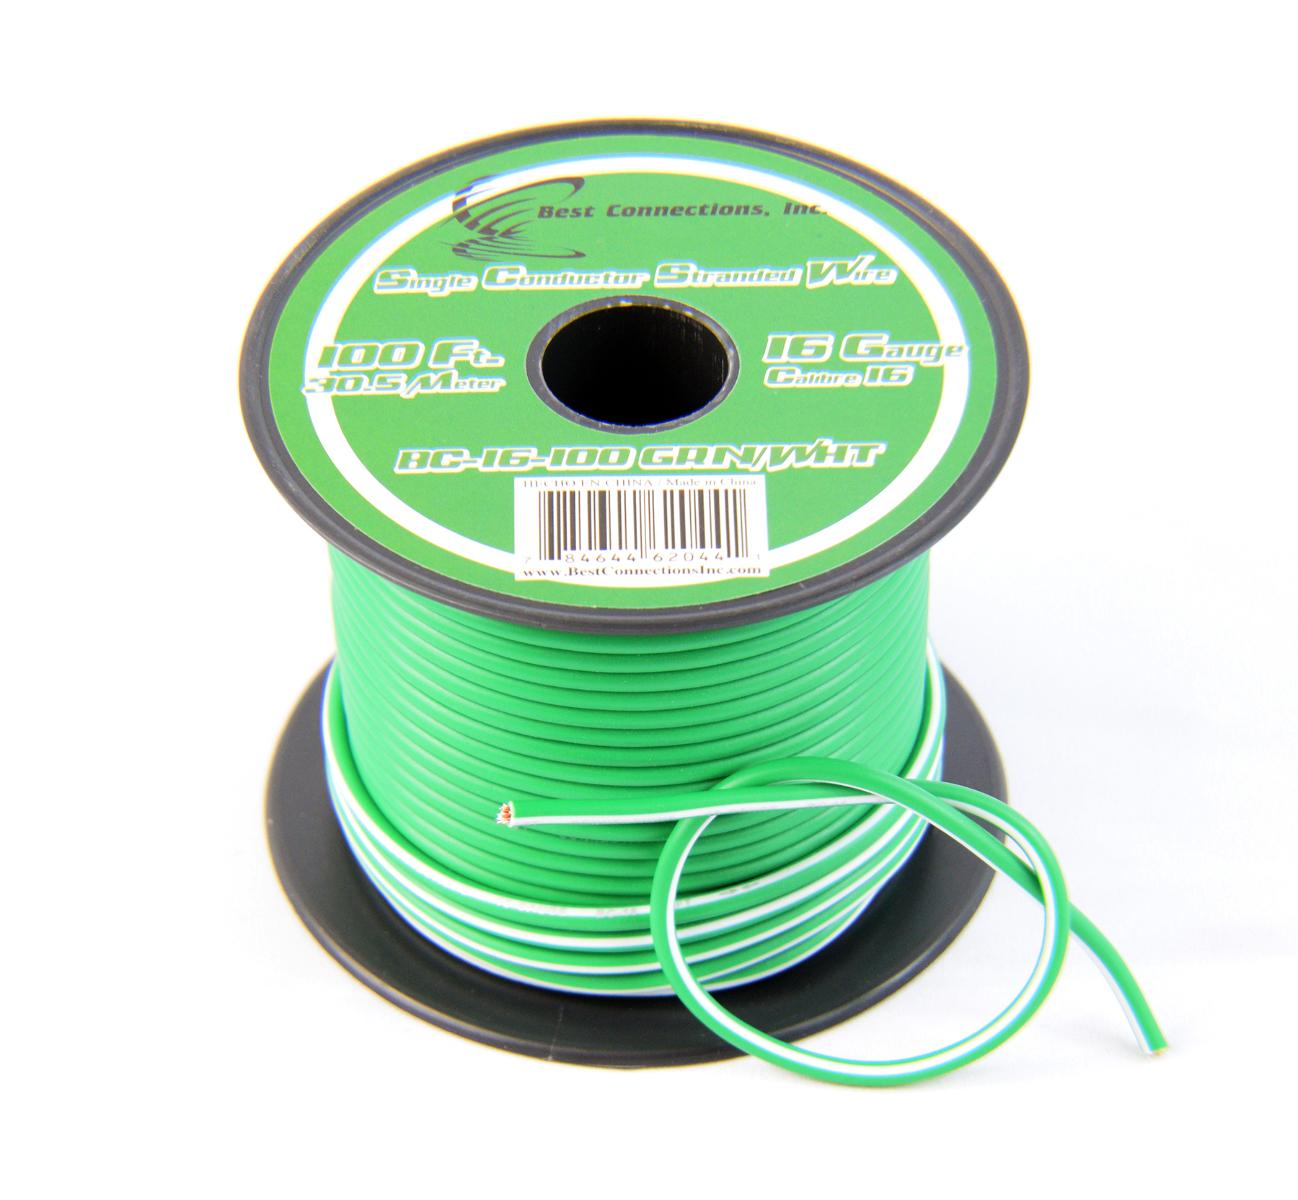 16 Gauge Green with White Stripe Tracer Wire - 100' FT